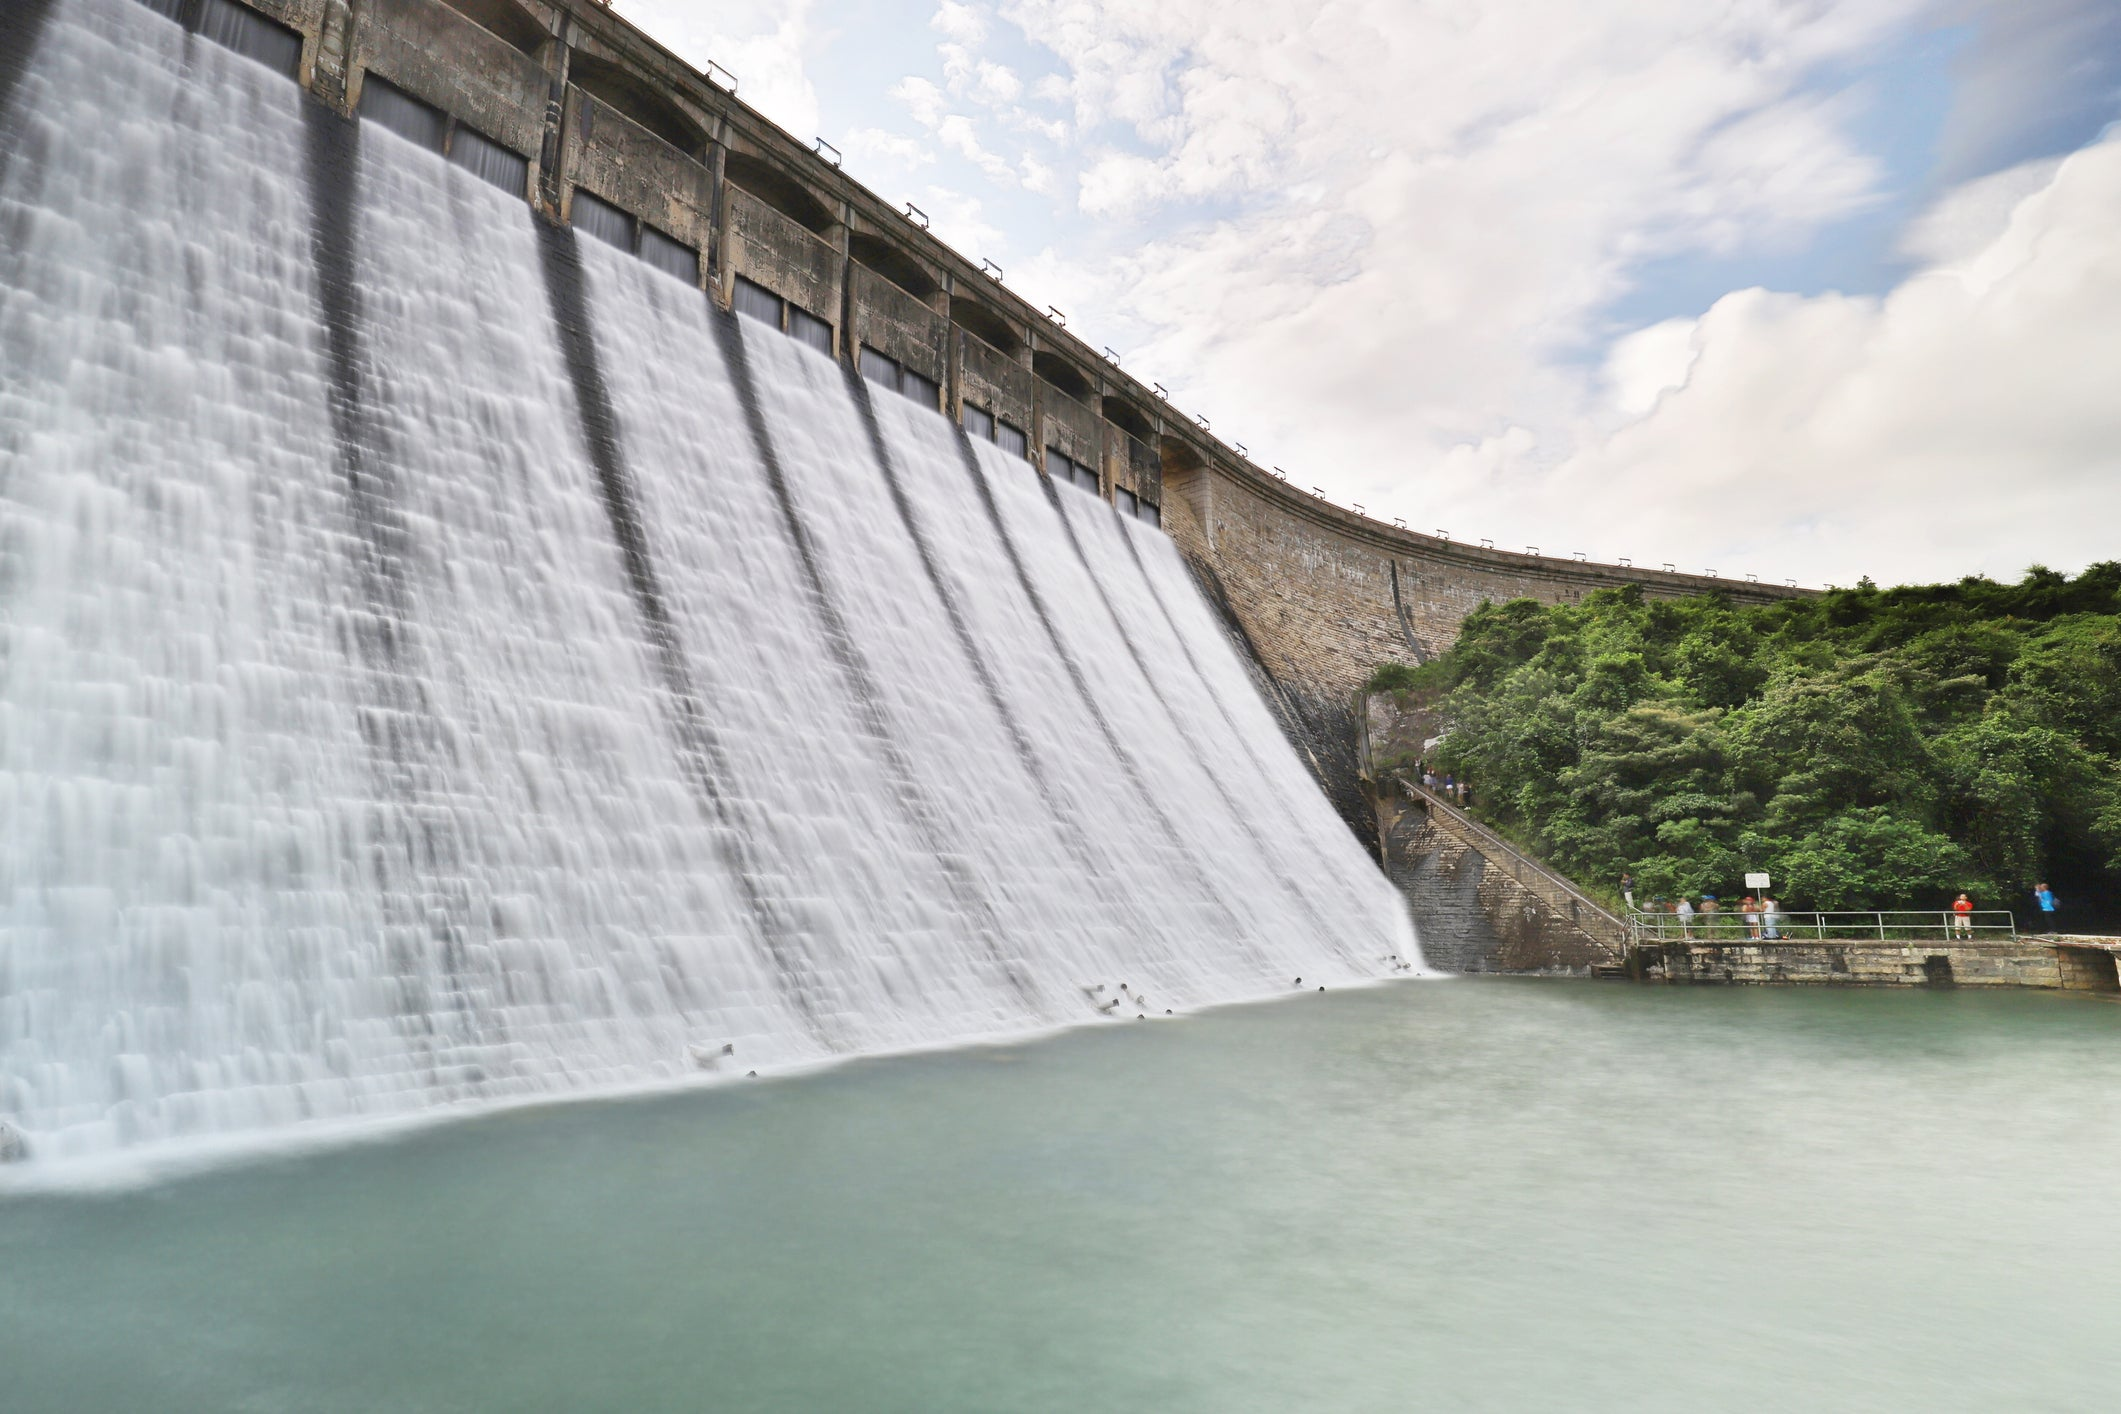 A dam holding off water.